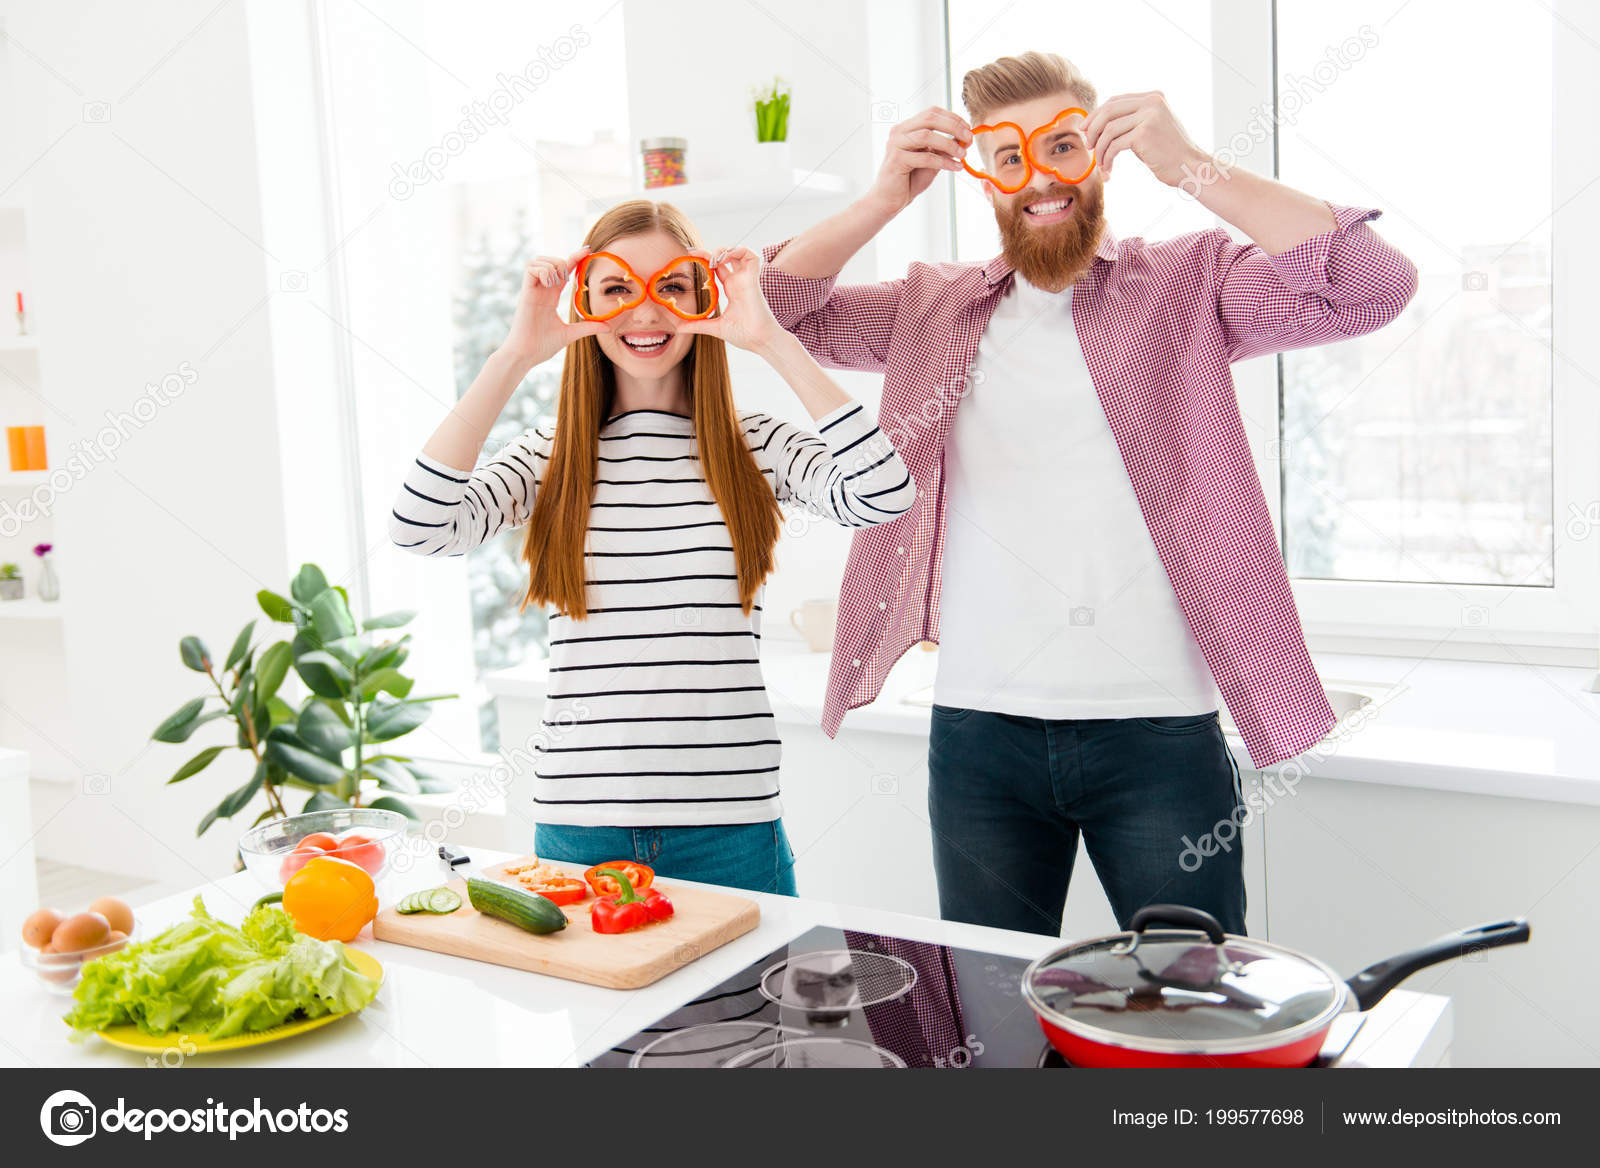 vegan veggie healthy nutrition fitness meal lifestyle laugh laughter concept stock photo